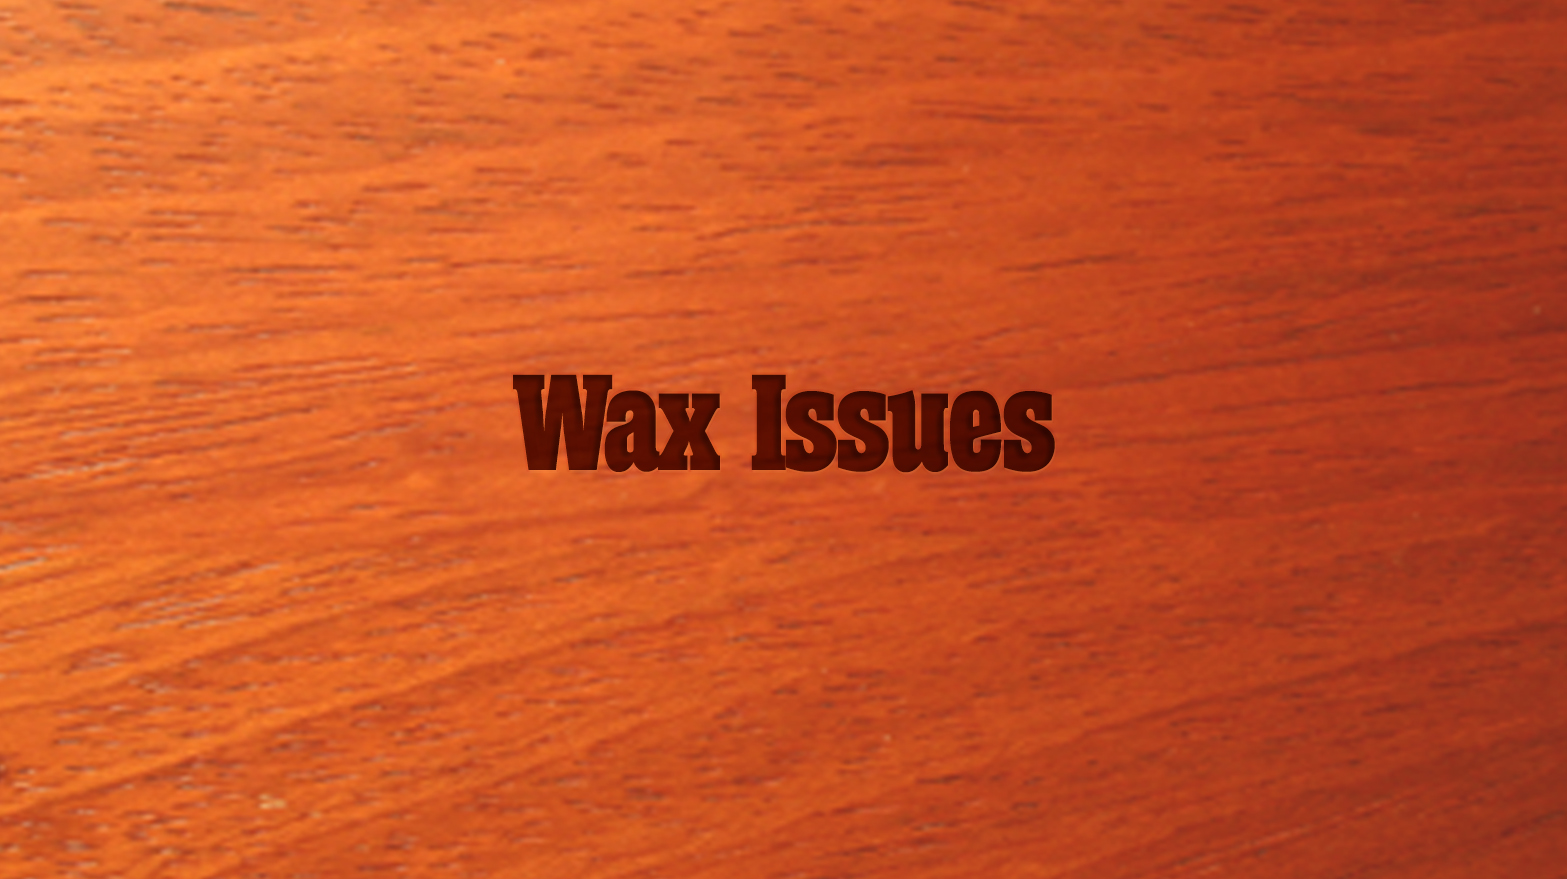 5 Day Intensive: Wax Issues